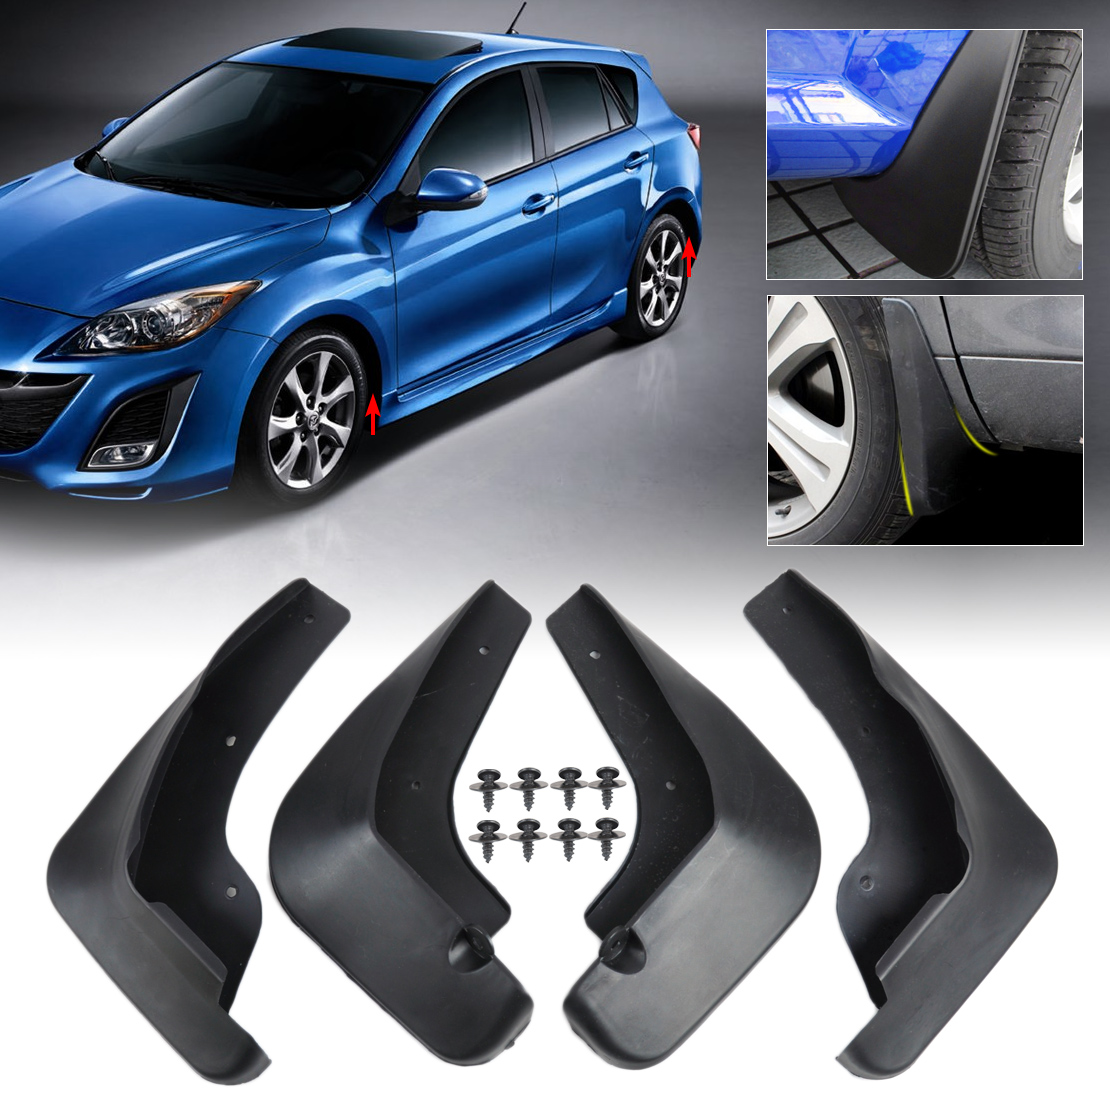 Image Is Loading MUDGUARD For 2009 2010 2011 2012 MAZDA 3